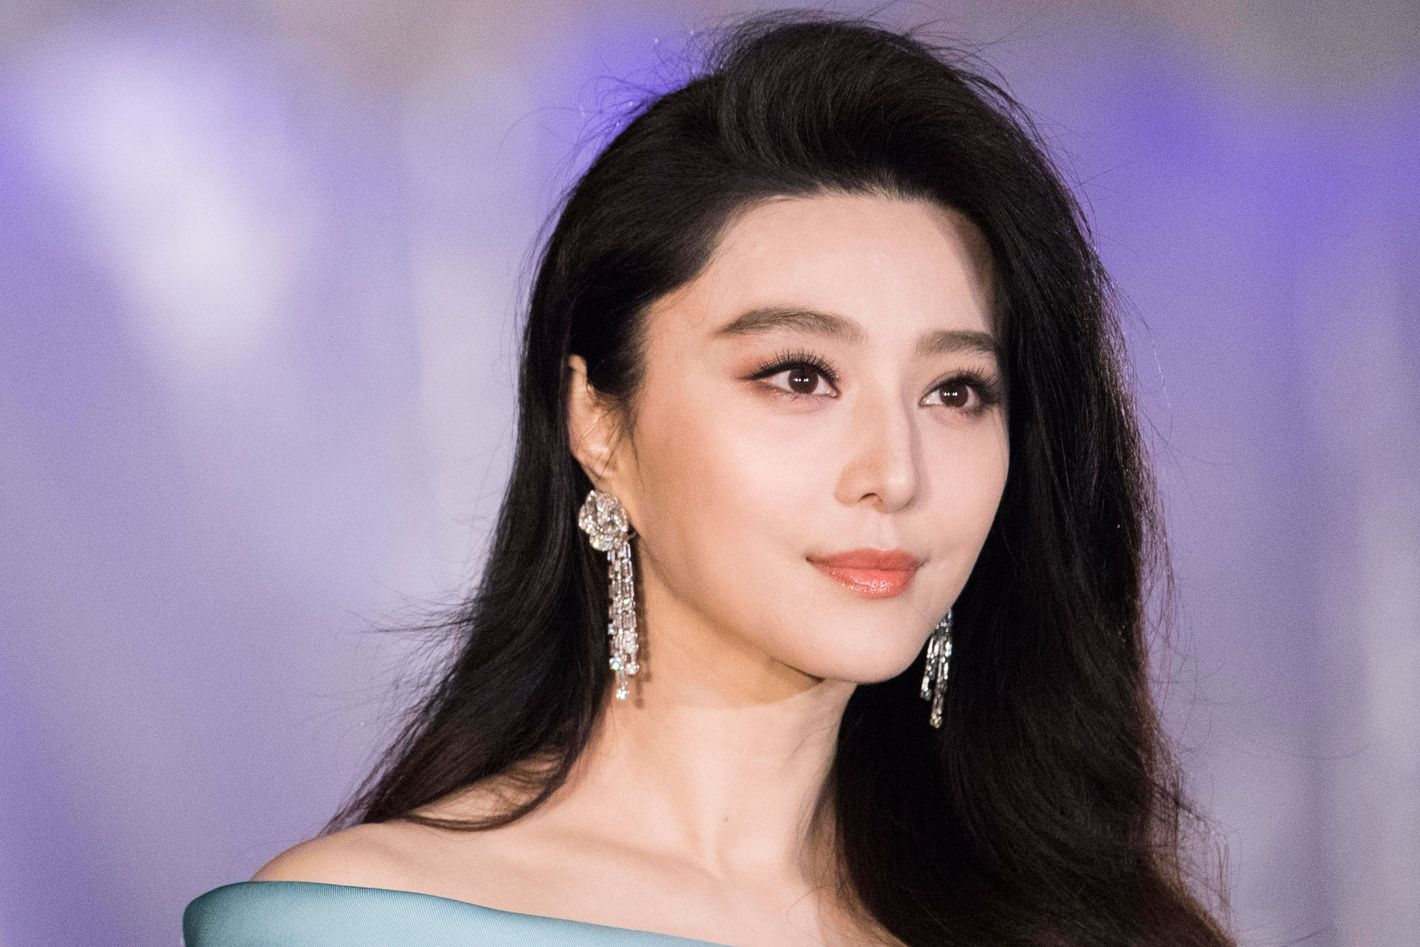 bingbing fan without makeup